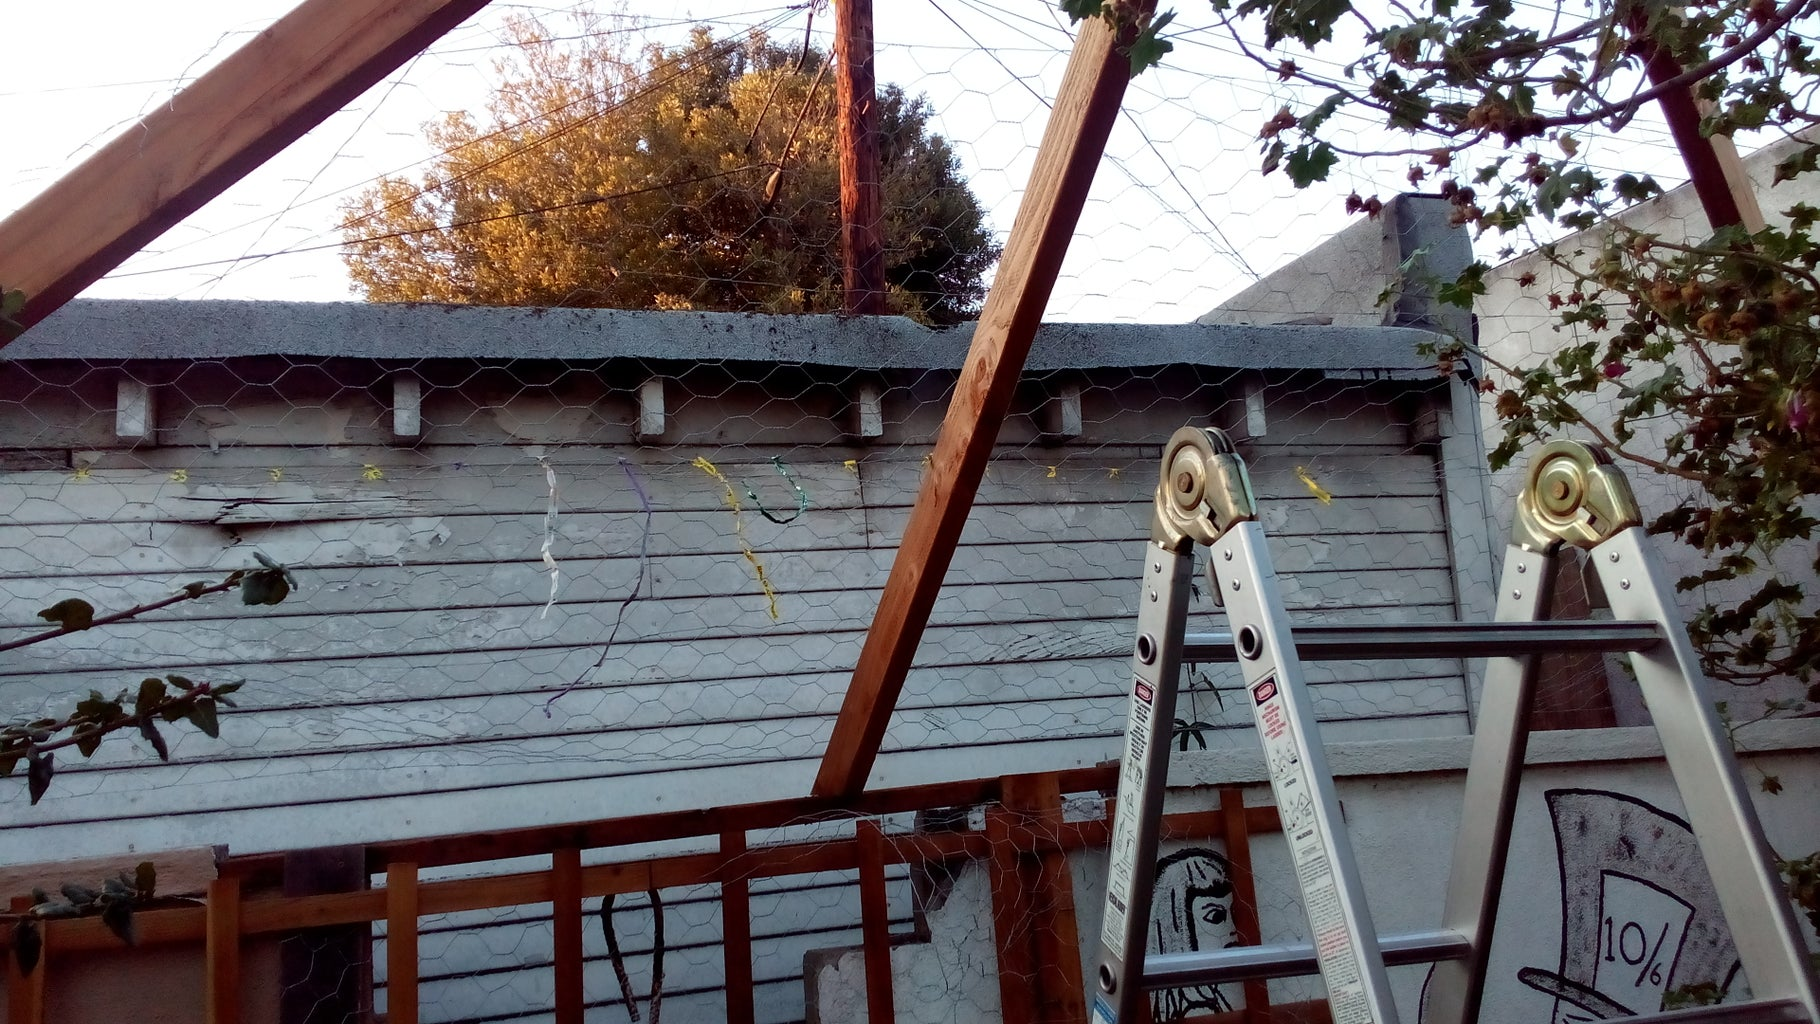 Begin Attaching Chicken Wire to the Top of the Roof